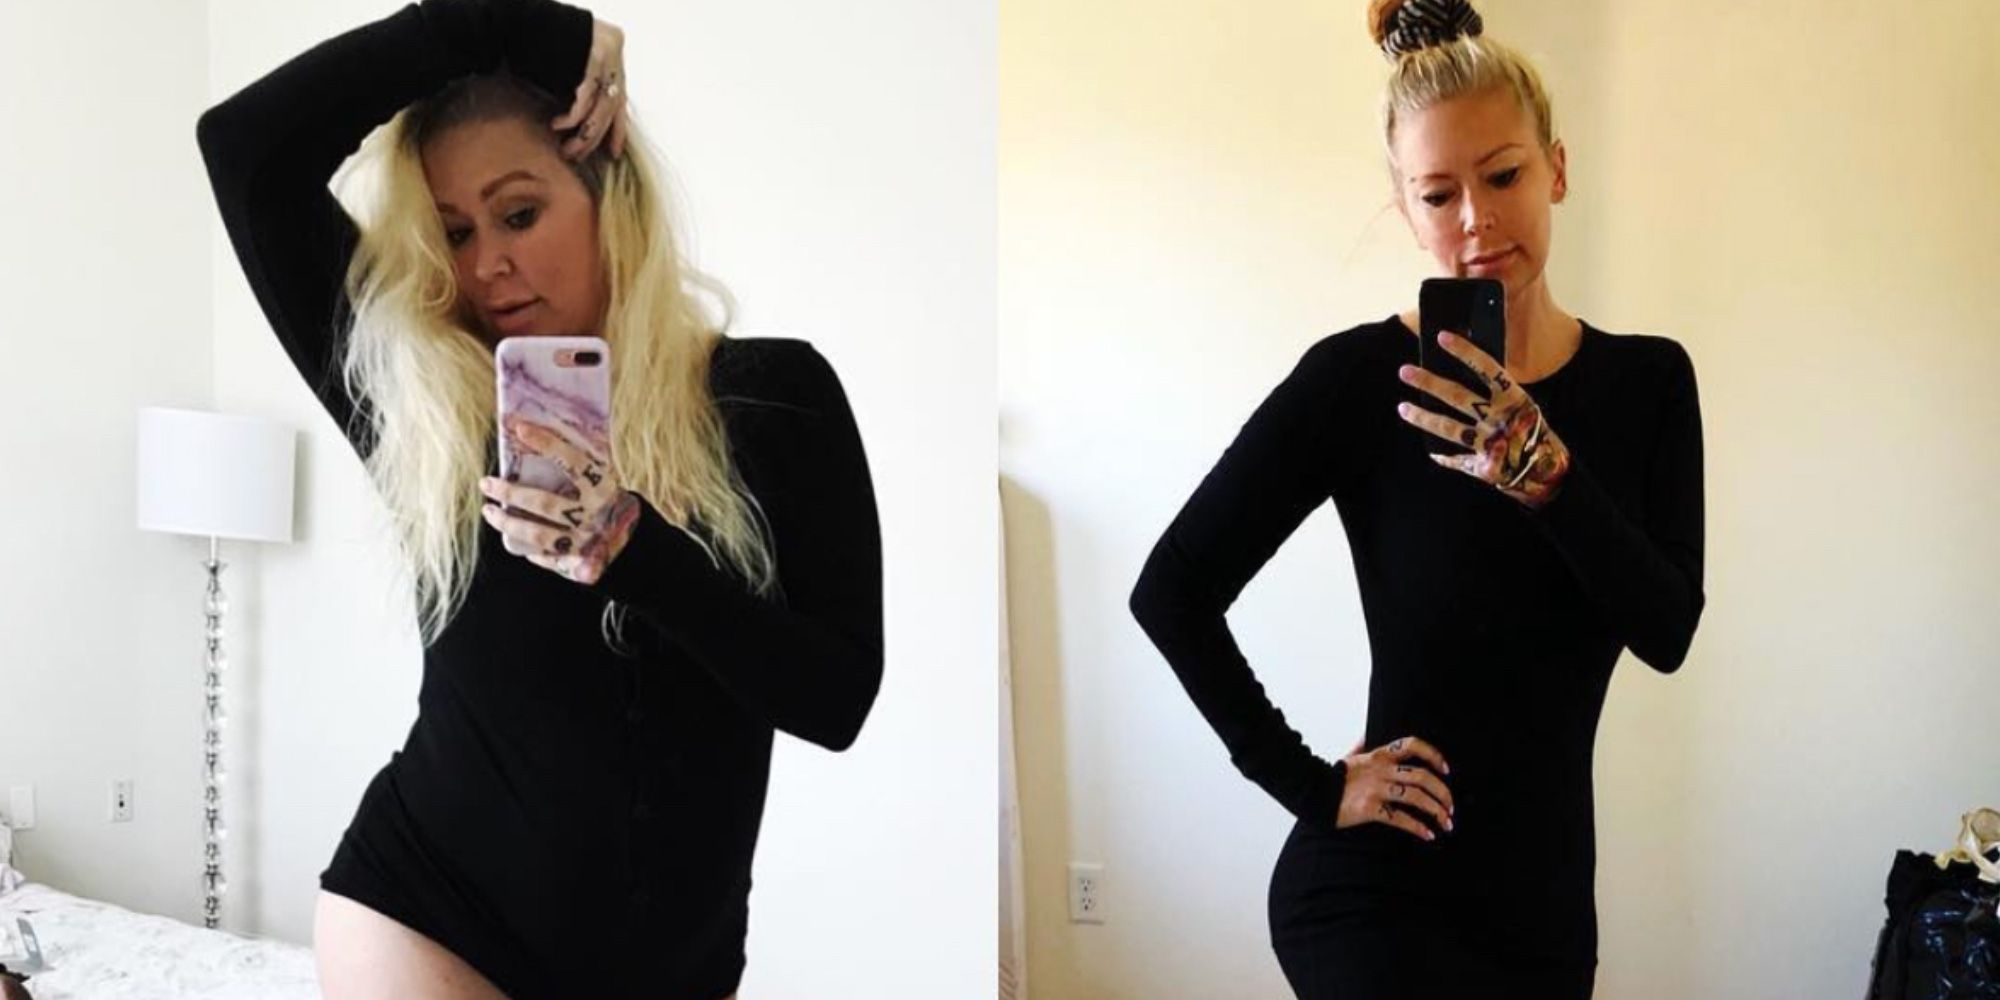 Jenna Jameson Says She's Eating More Calories To Stay At 125 Pounds